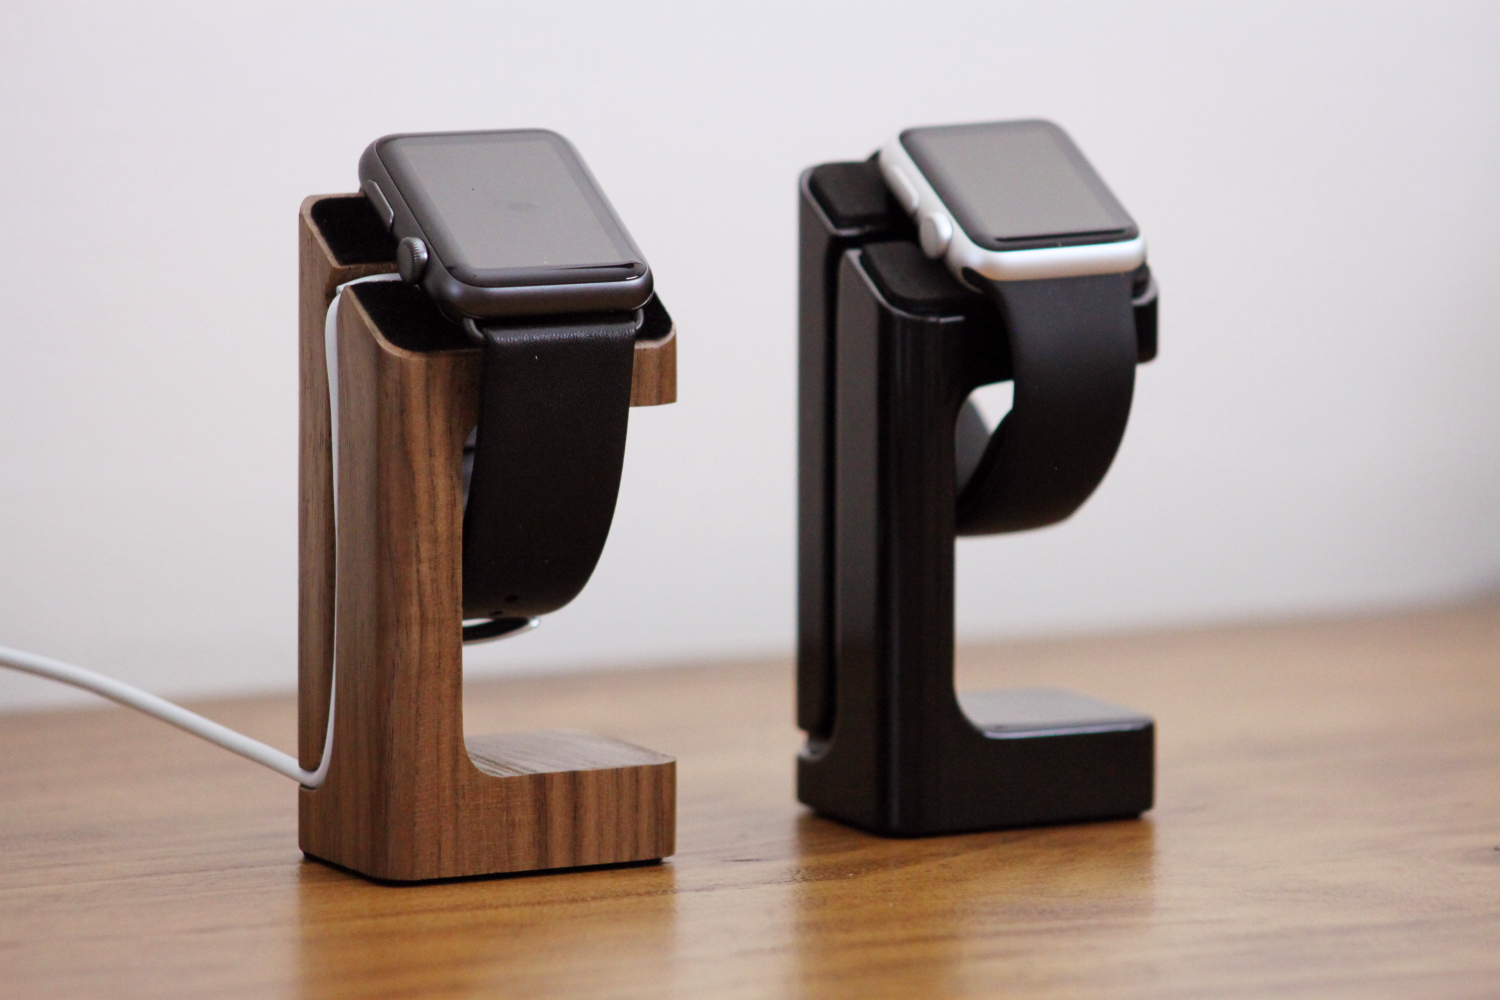 JETech Apple Watch Stand Review